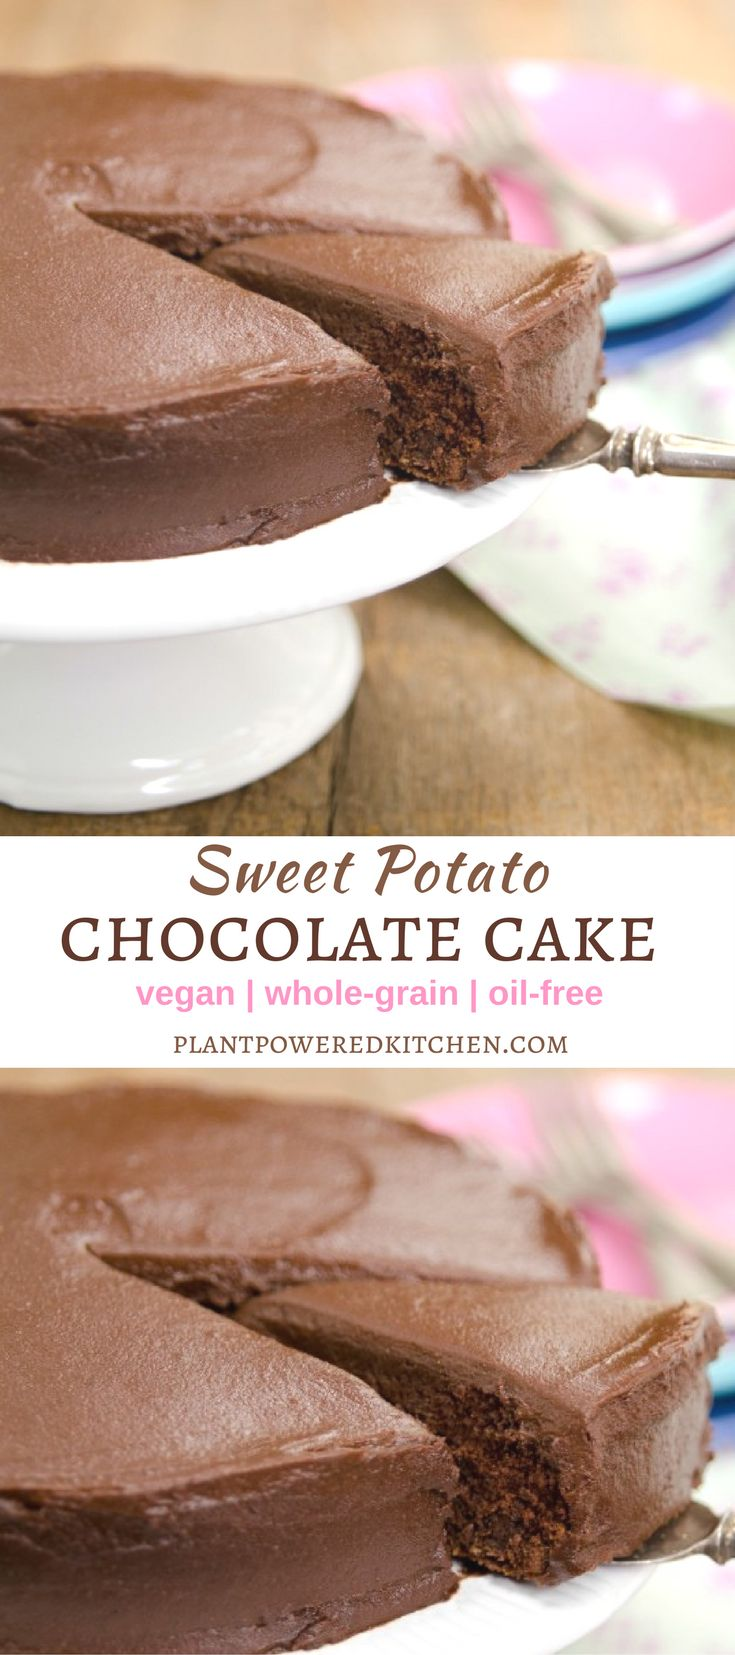 This vegan cake is sweetened partially with cooked sweet potato, which also adds moisture and a tender texture. Pair it withChocolate Sweets Frosting and you have a cake fit for a special occasion! #VeganDesserts #dessertfoodrecipes